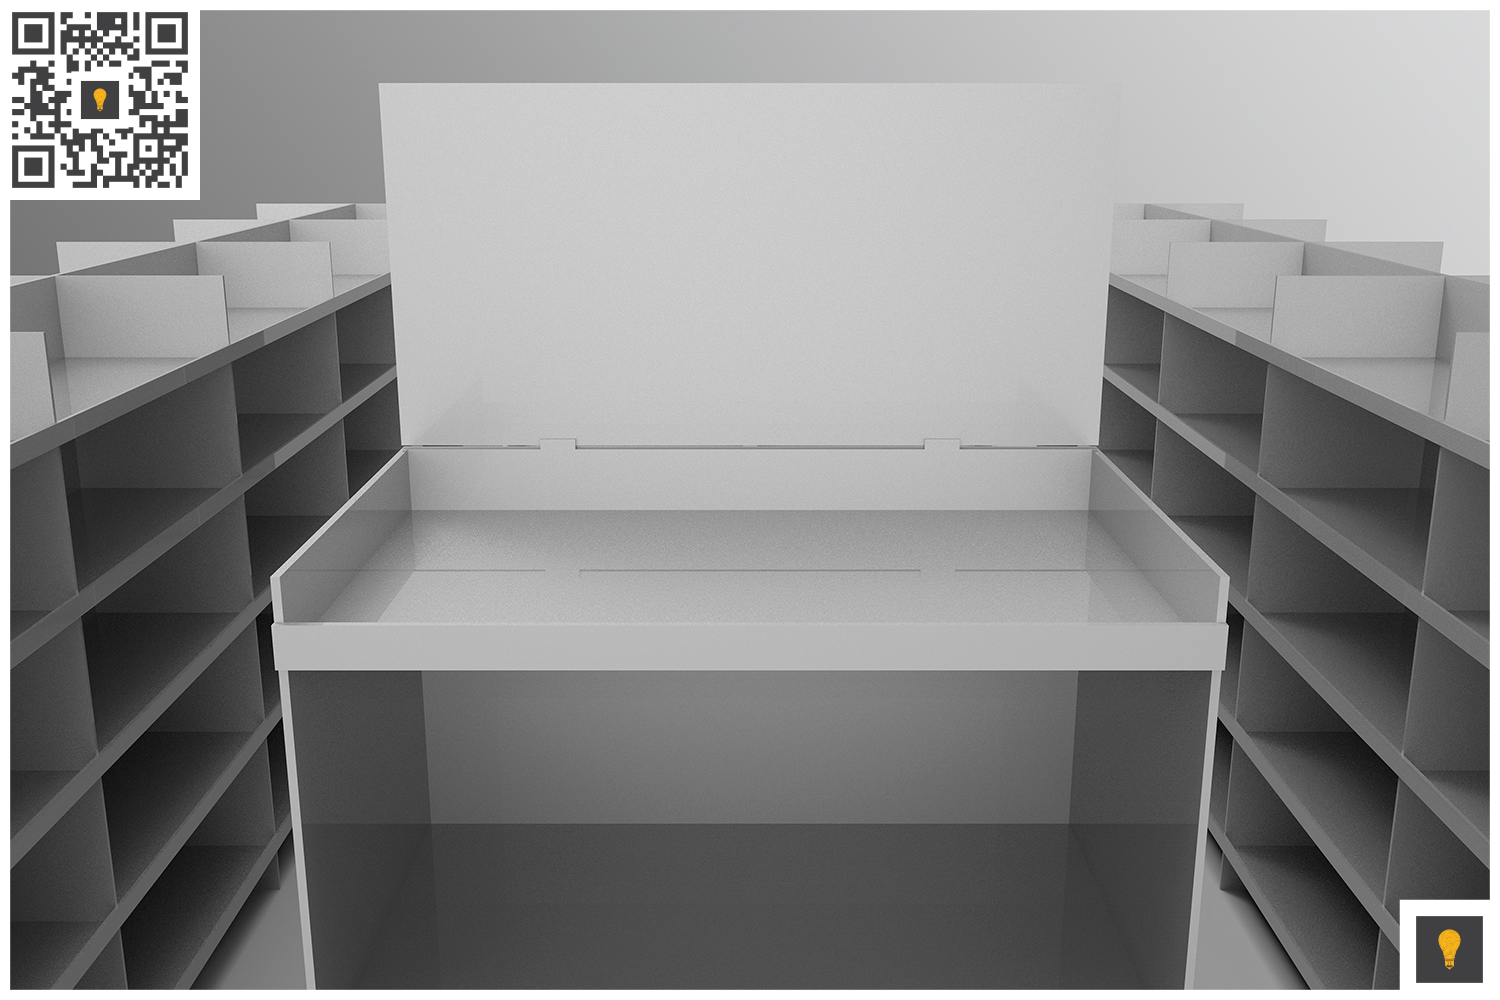 Aisle with Gondola Store 3D Render example image 4